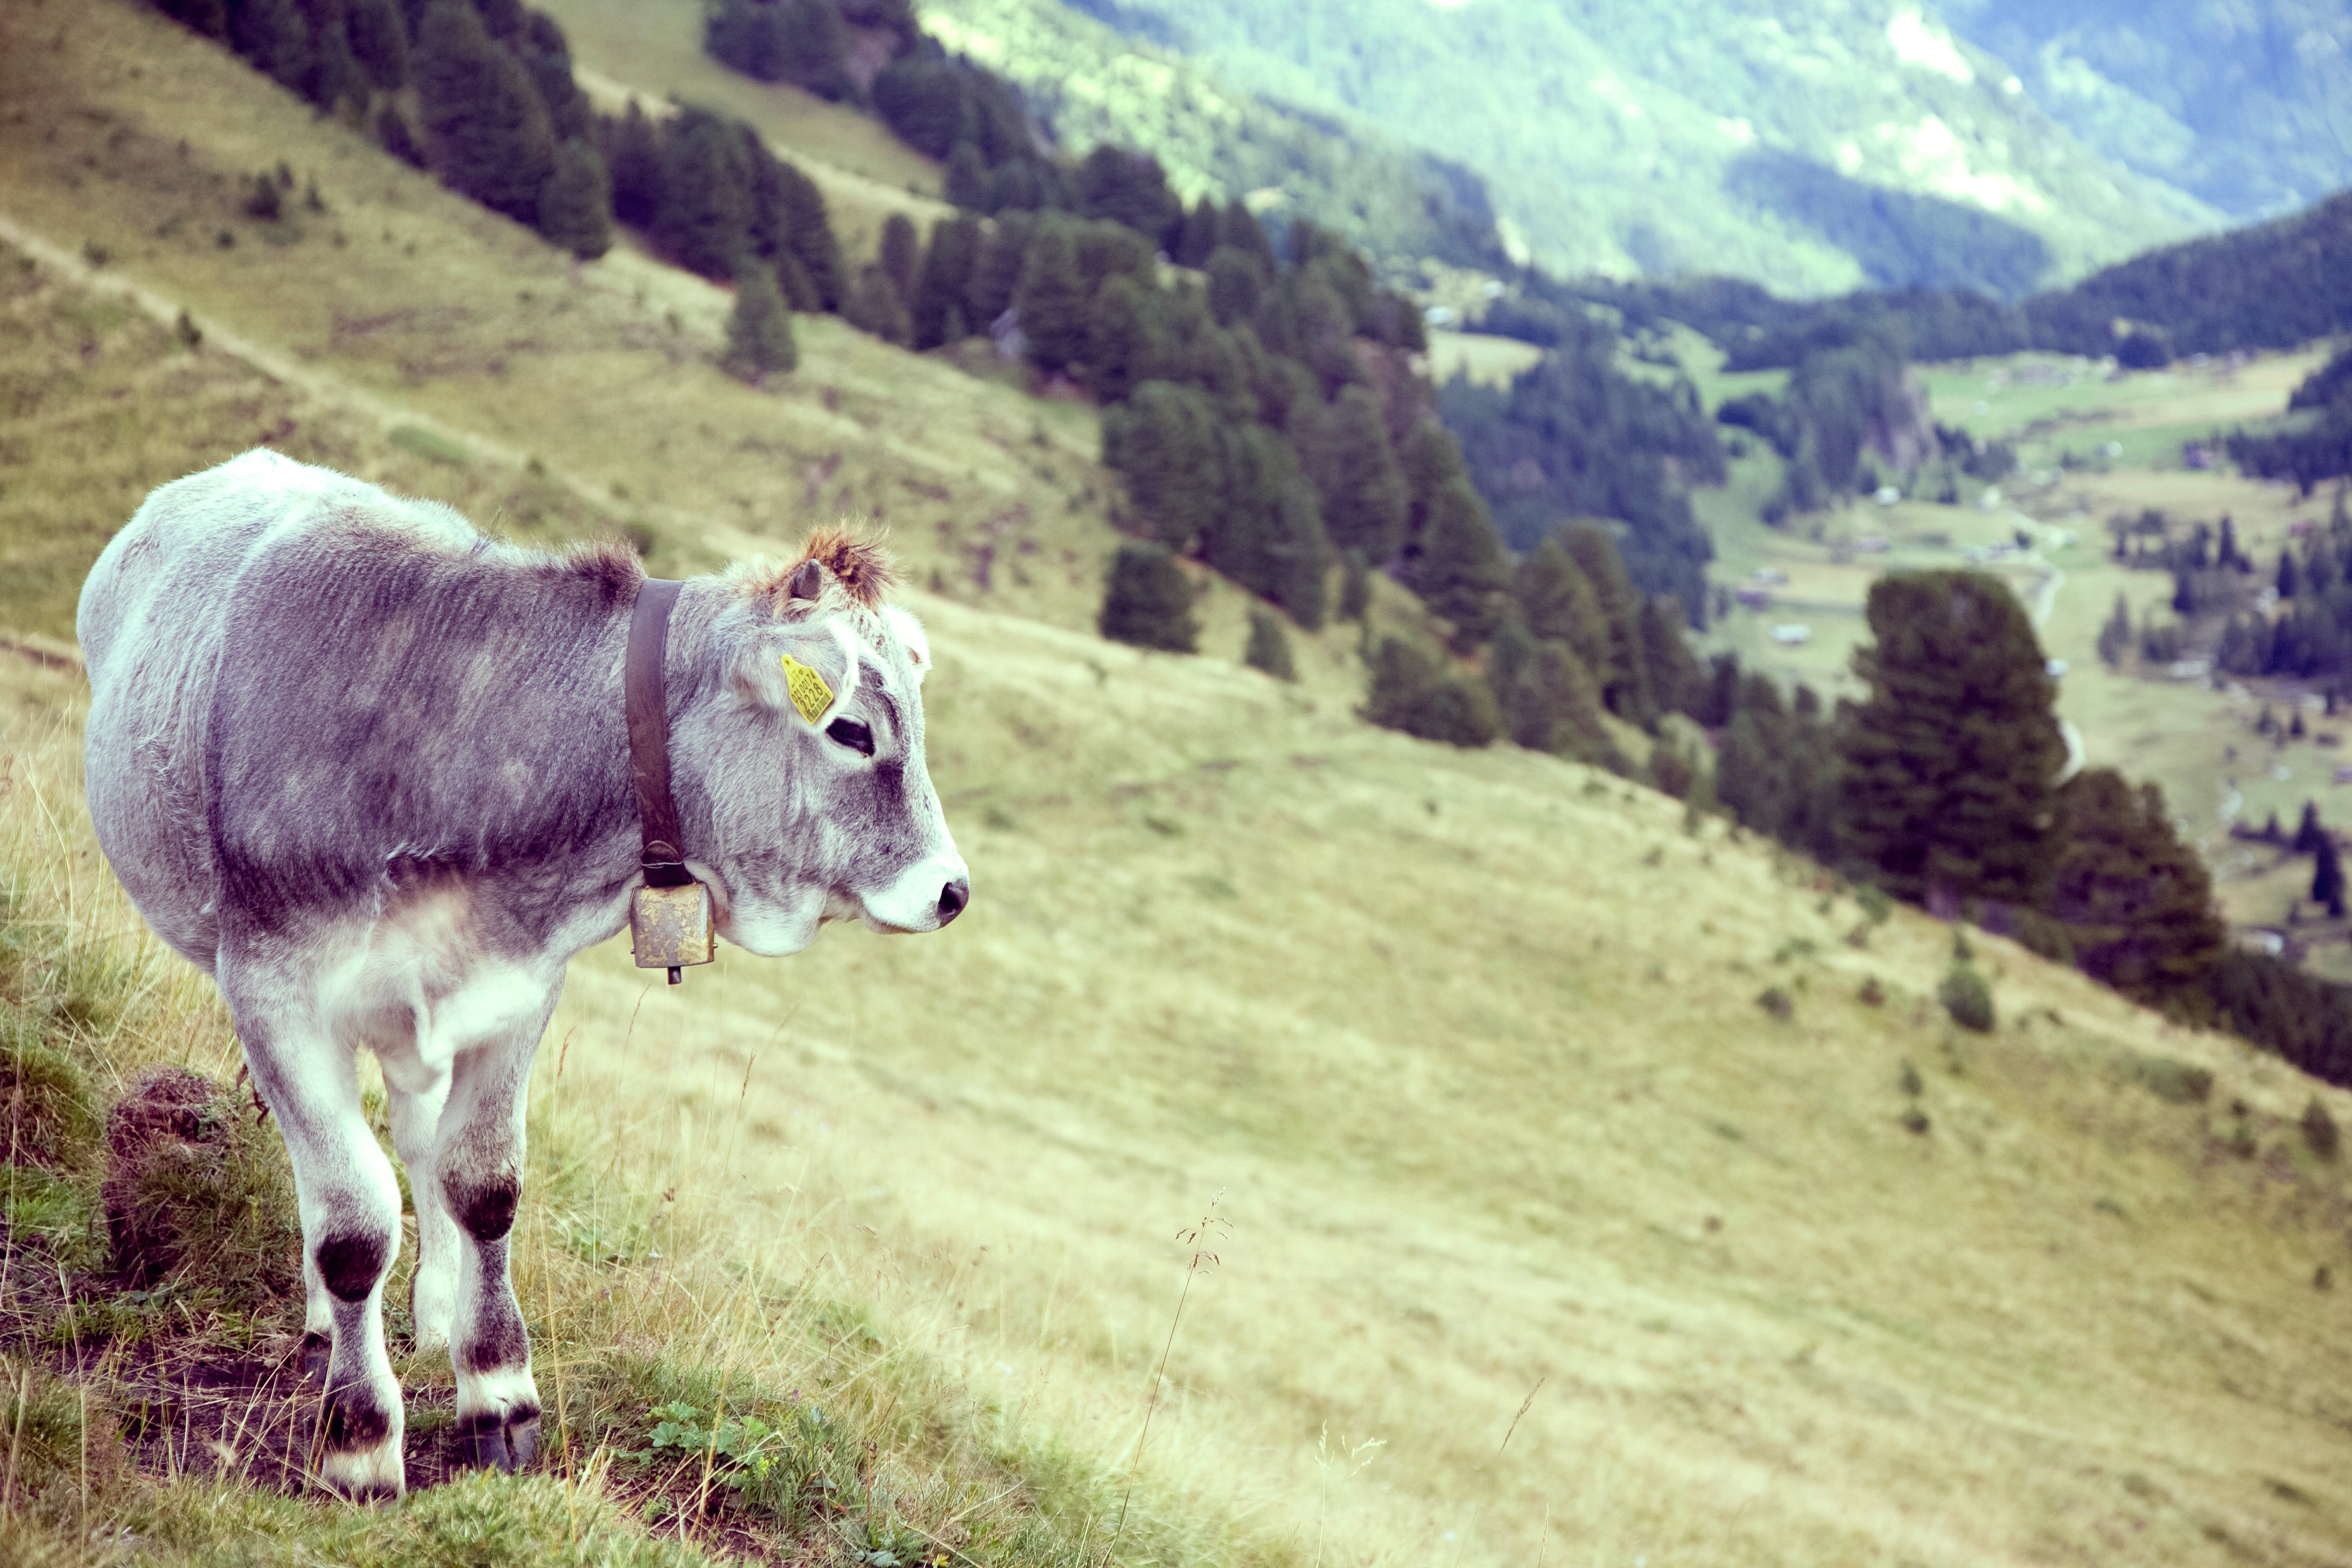 Grey Cow on Green Grass Field Near Near Trees during Daytime